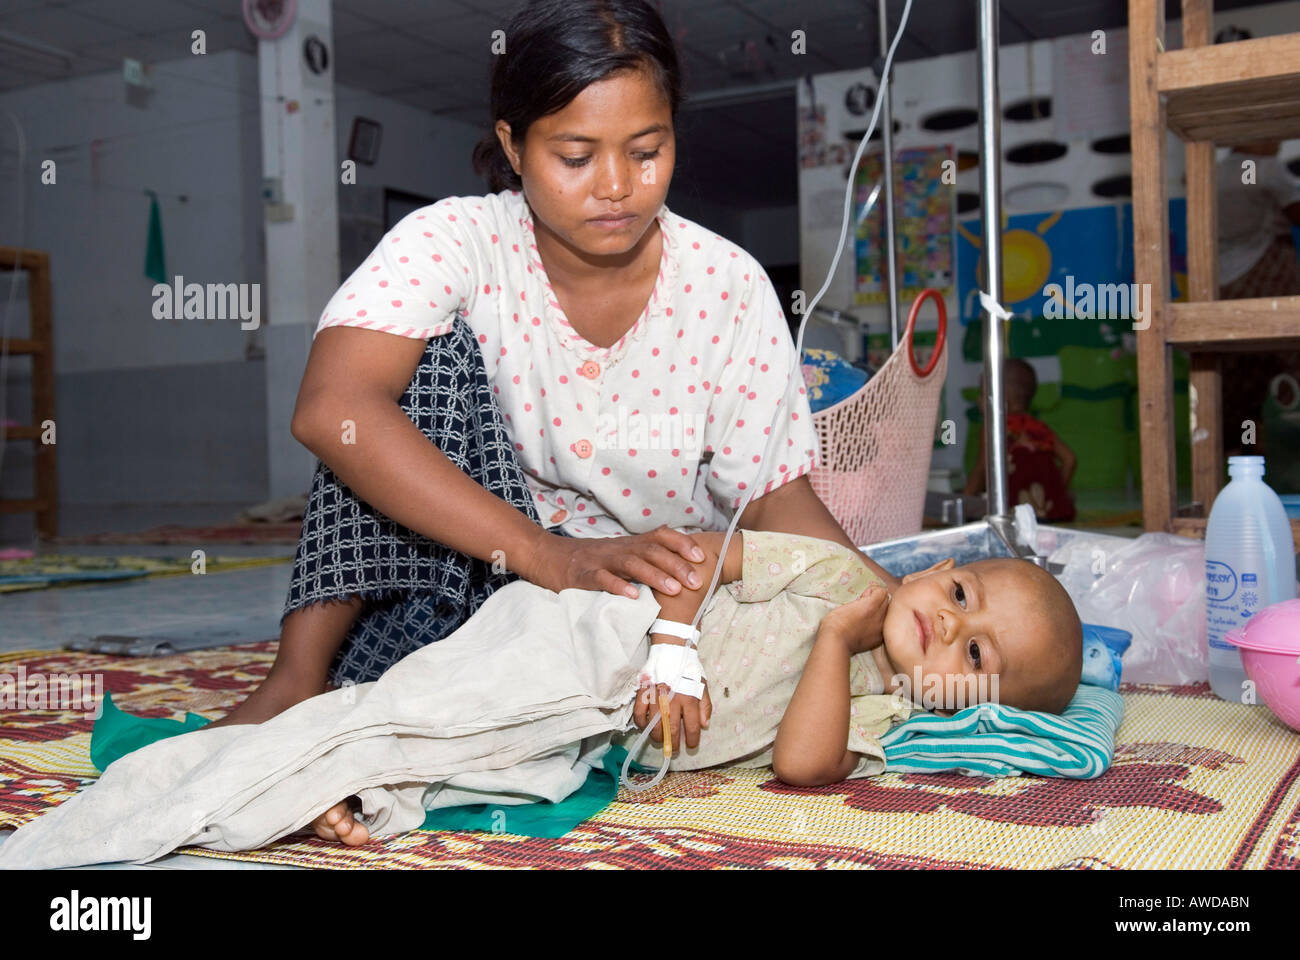 Burmese refugee mother caring about her sick child, paediatric station, Mae Tao Clinic, Maesot, Thailand - Stock Image